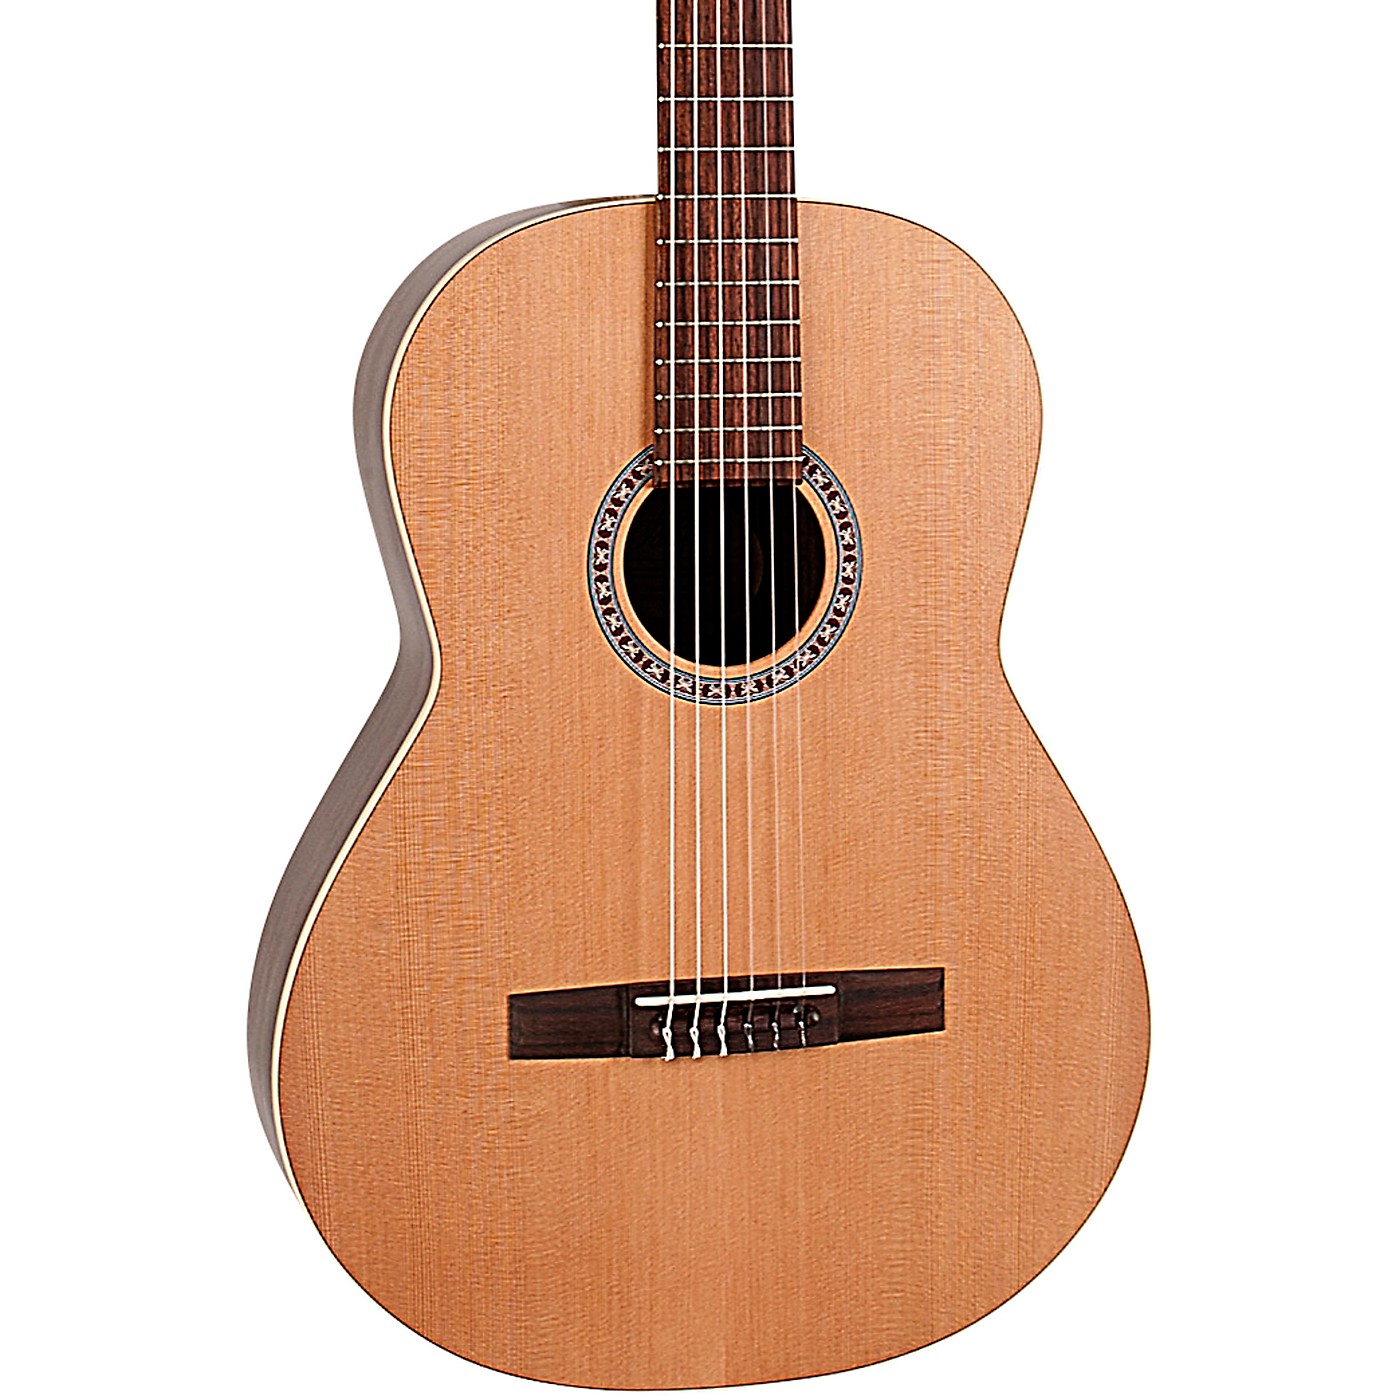 Godin Presentation Nylon-String Guitar thumbnail